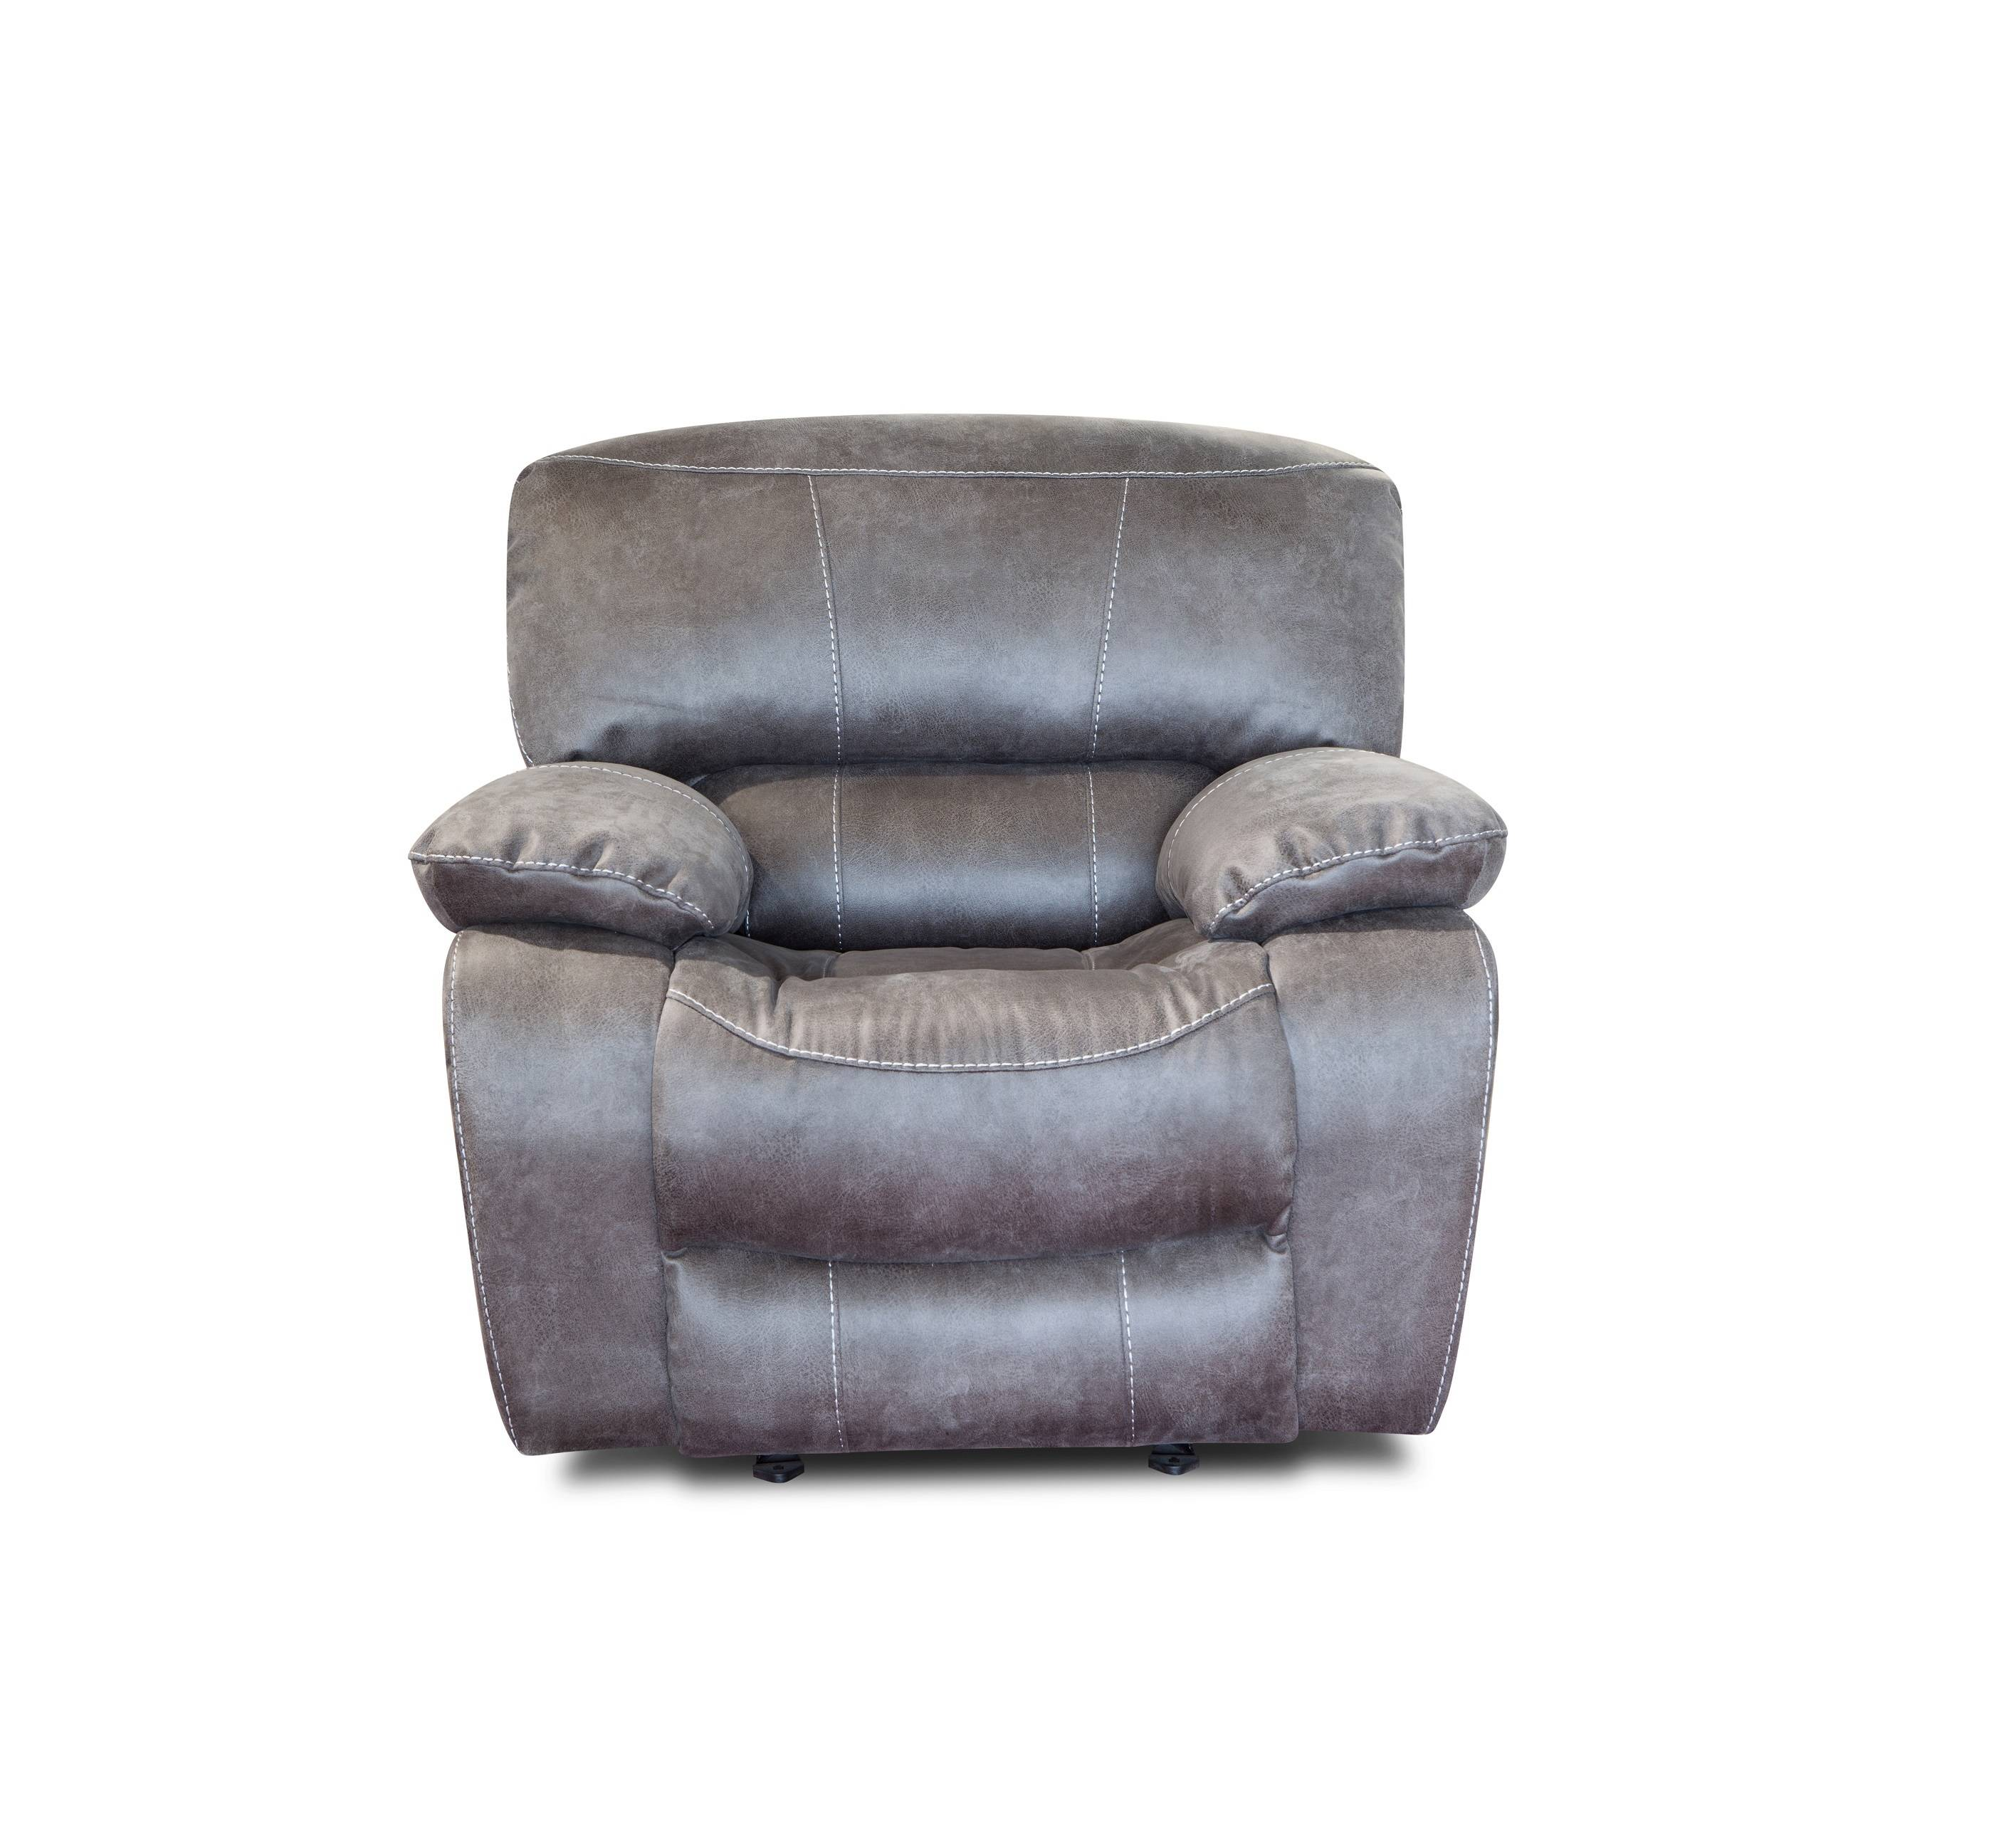 Hot sales home furniture leisure lift recliner leather chair